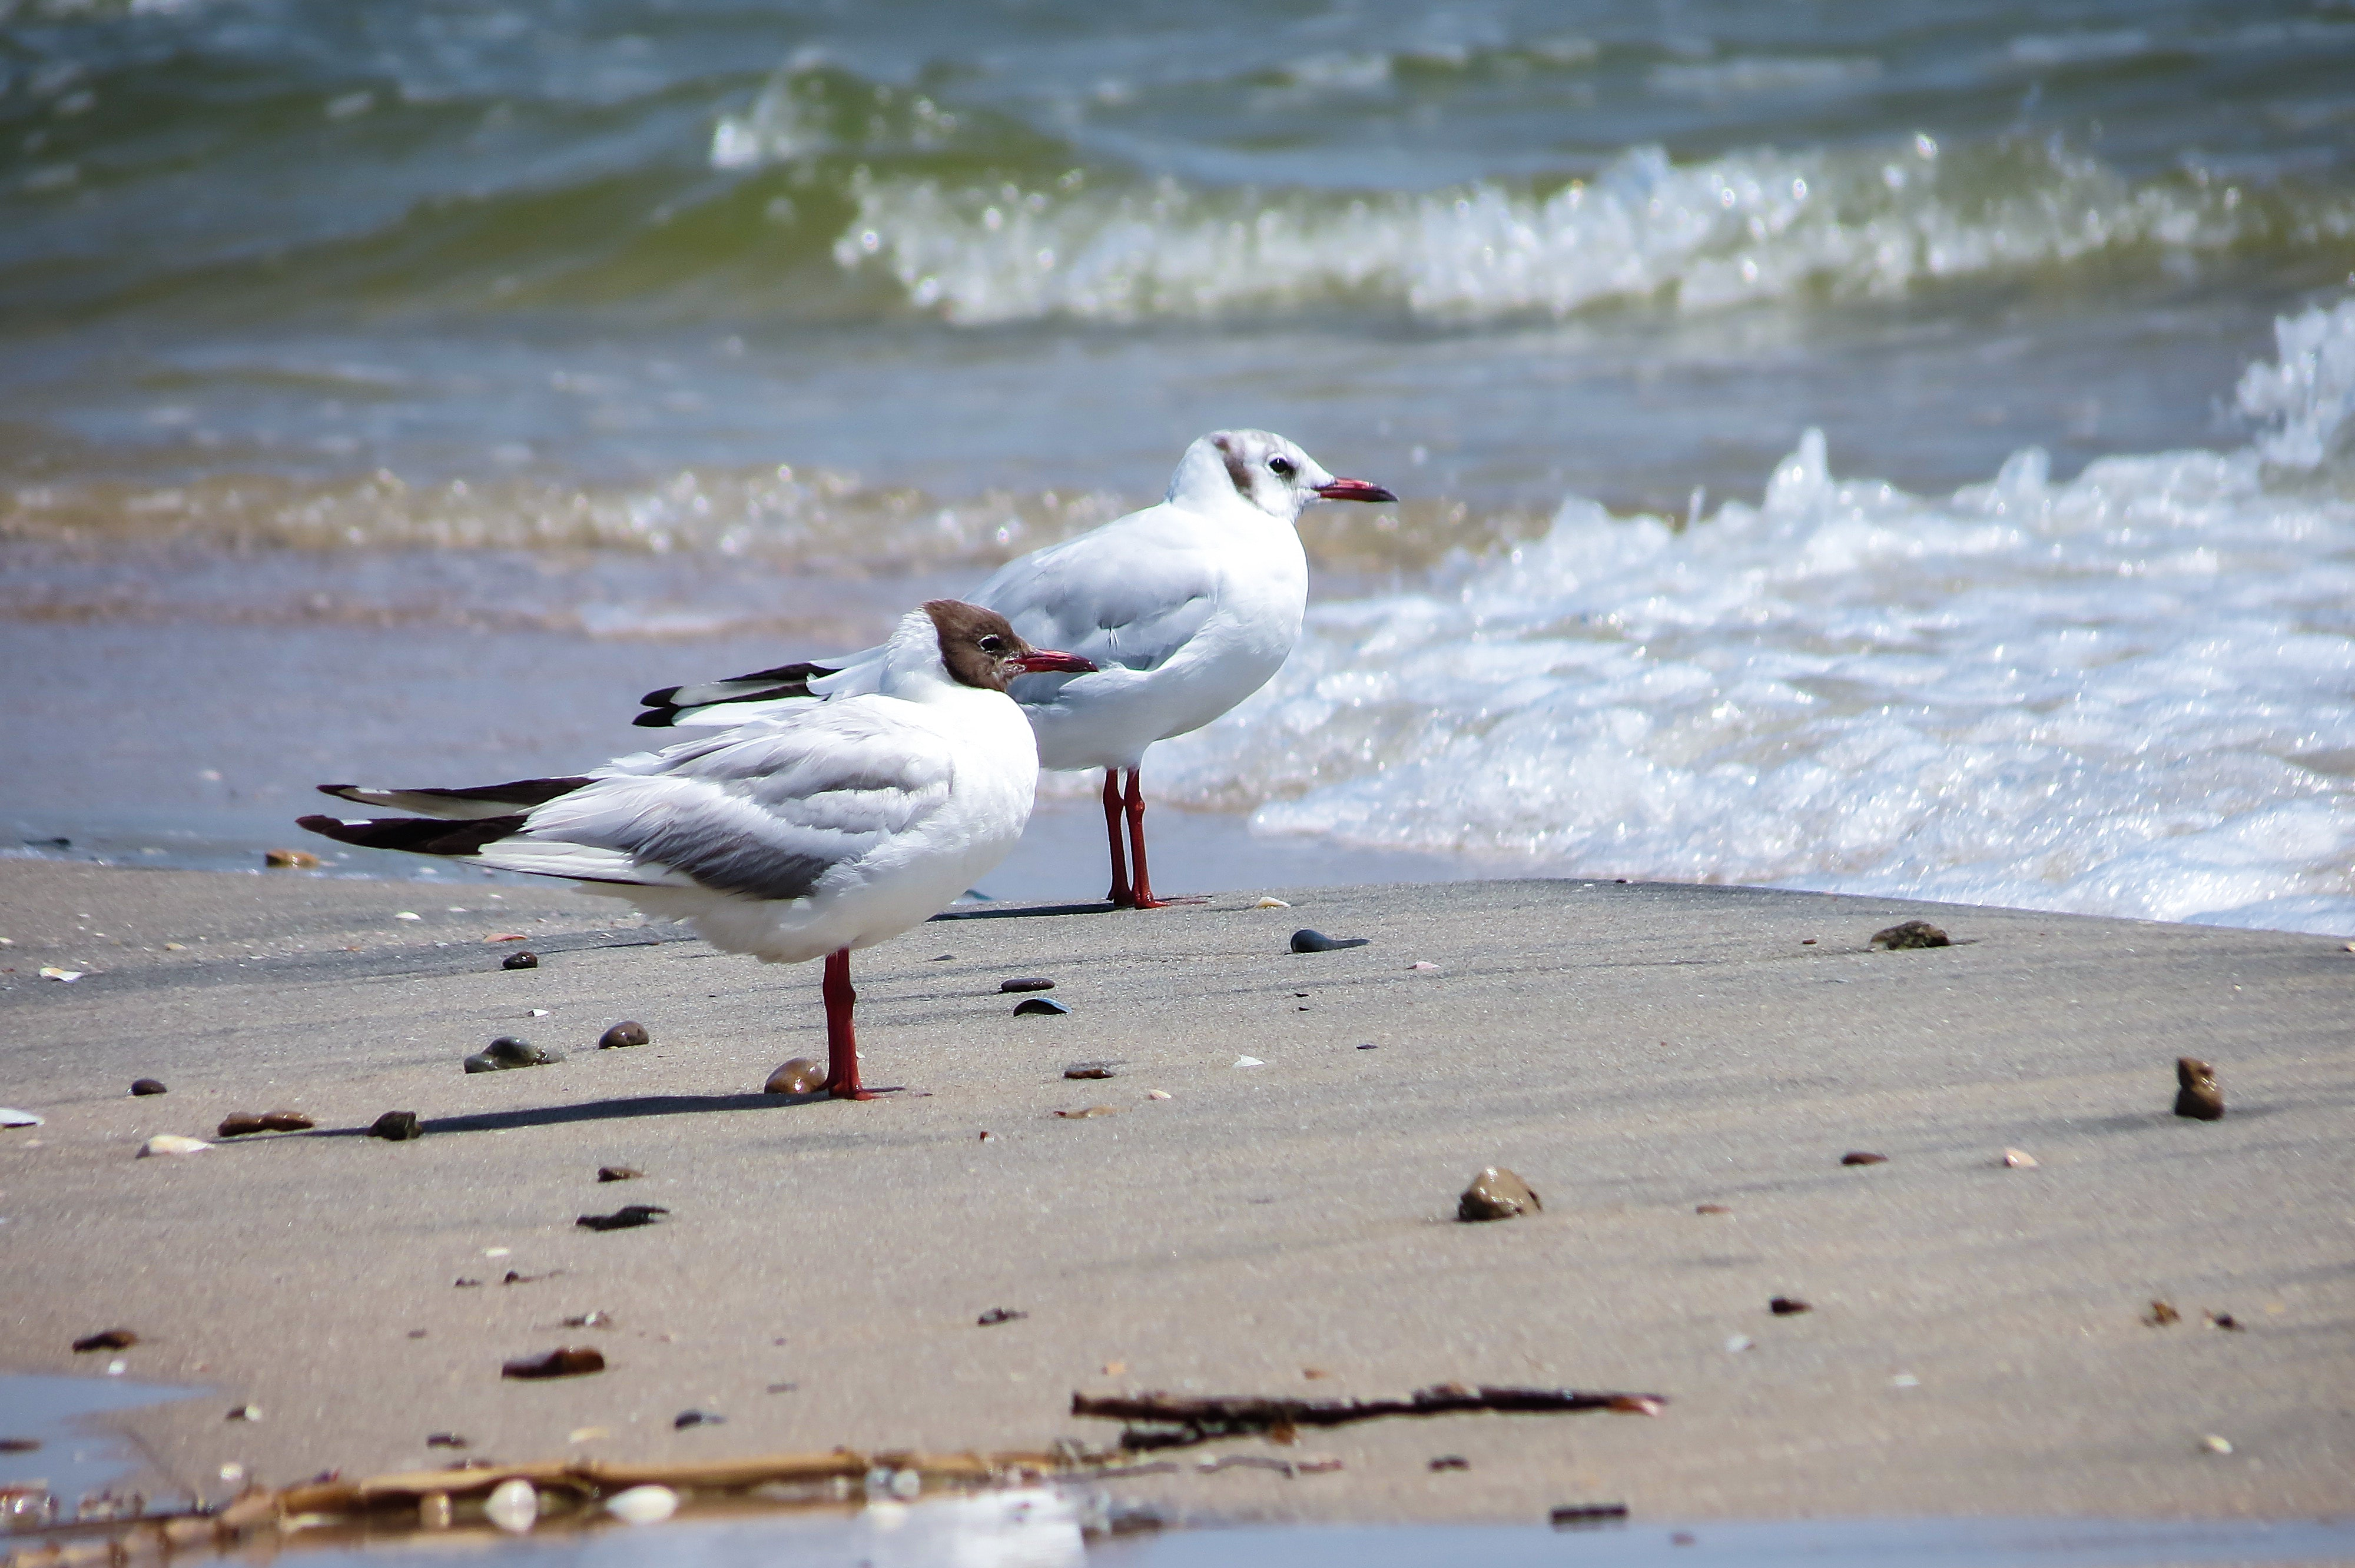 two seagulls at on the sand with waves